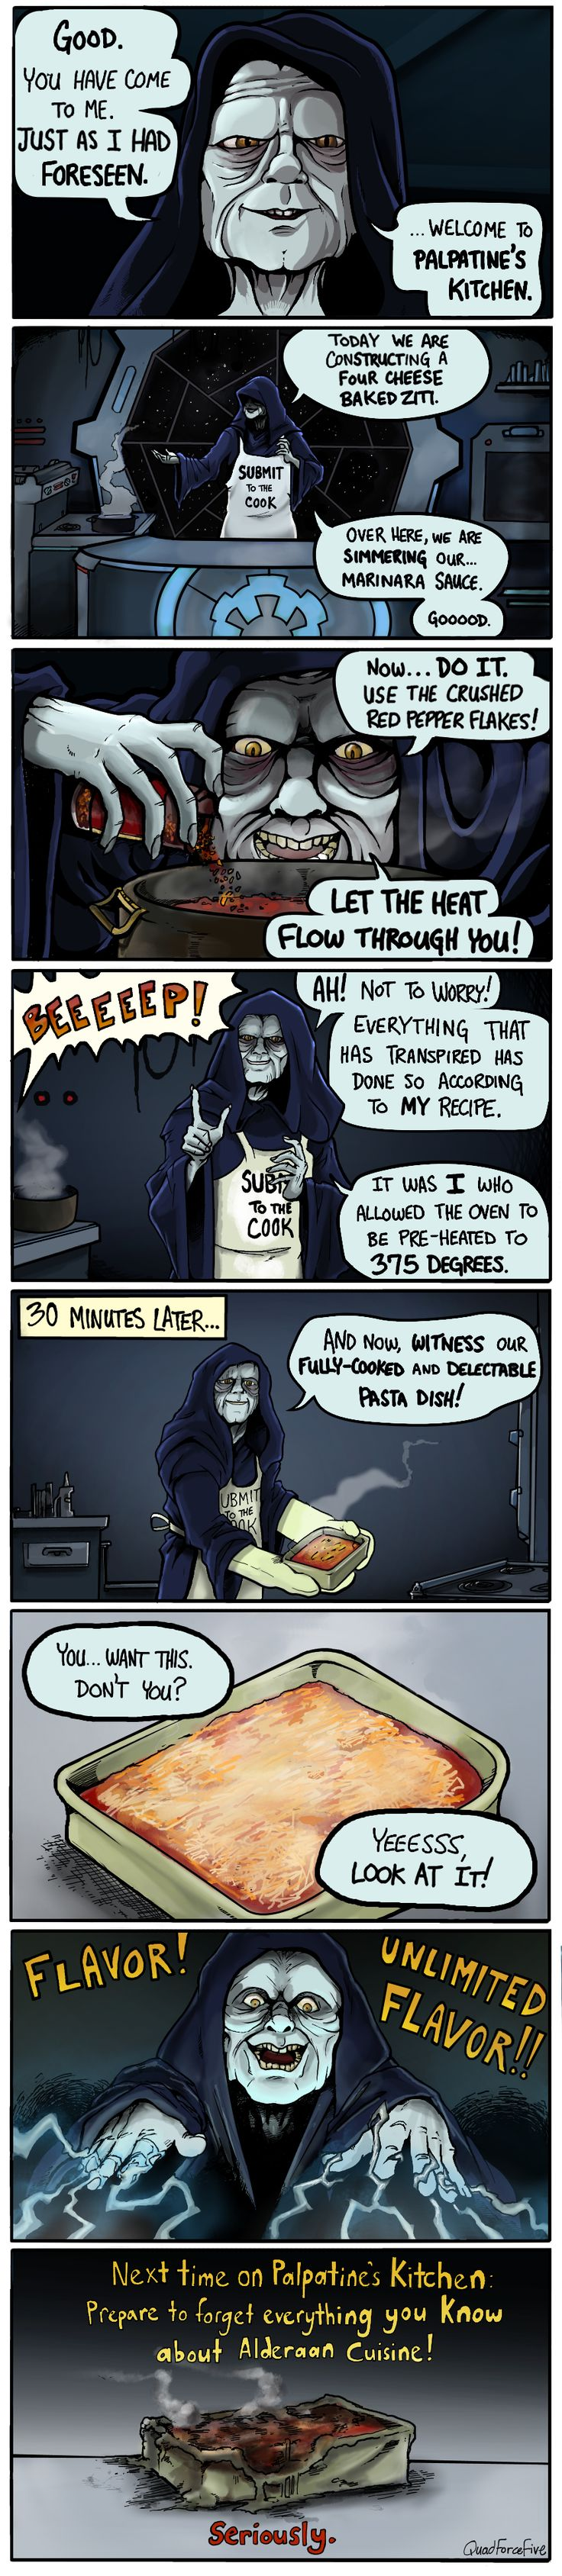 'Palpatine's Kitchen' - Star Wars Comic by Quad Force Five - EpicStream